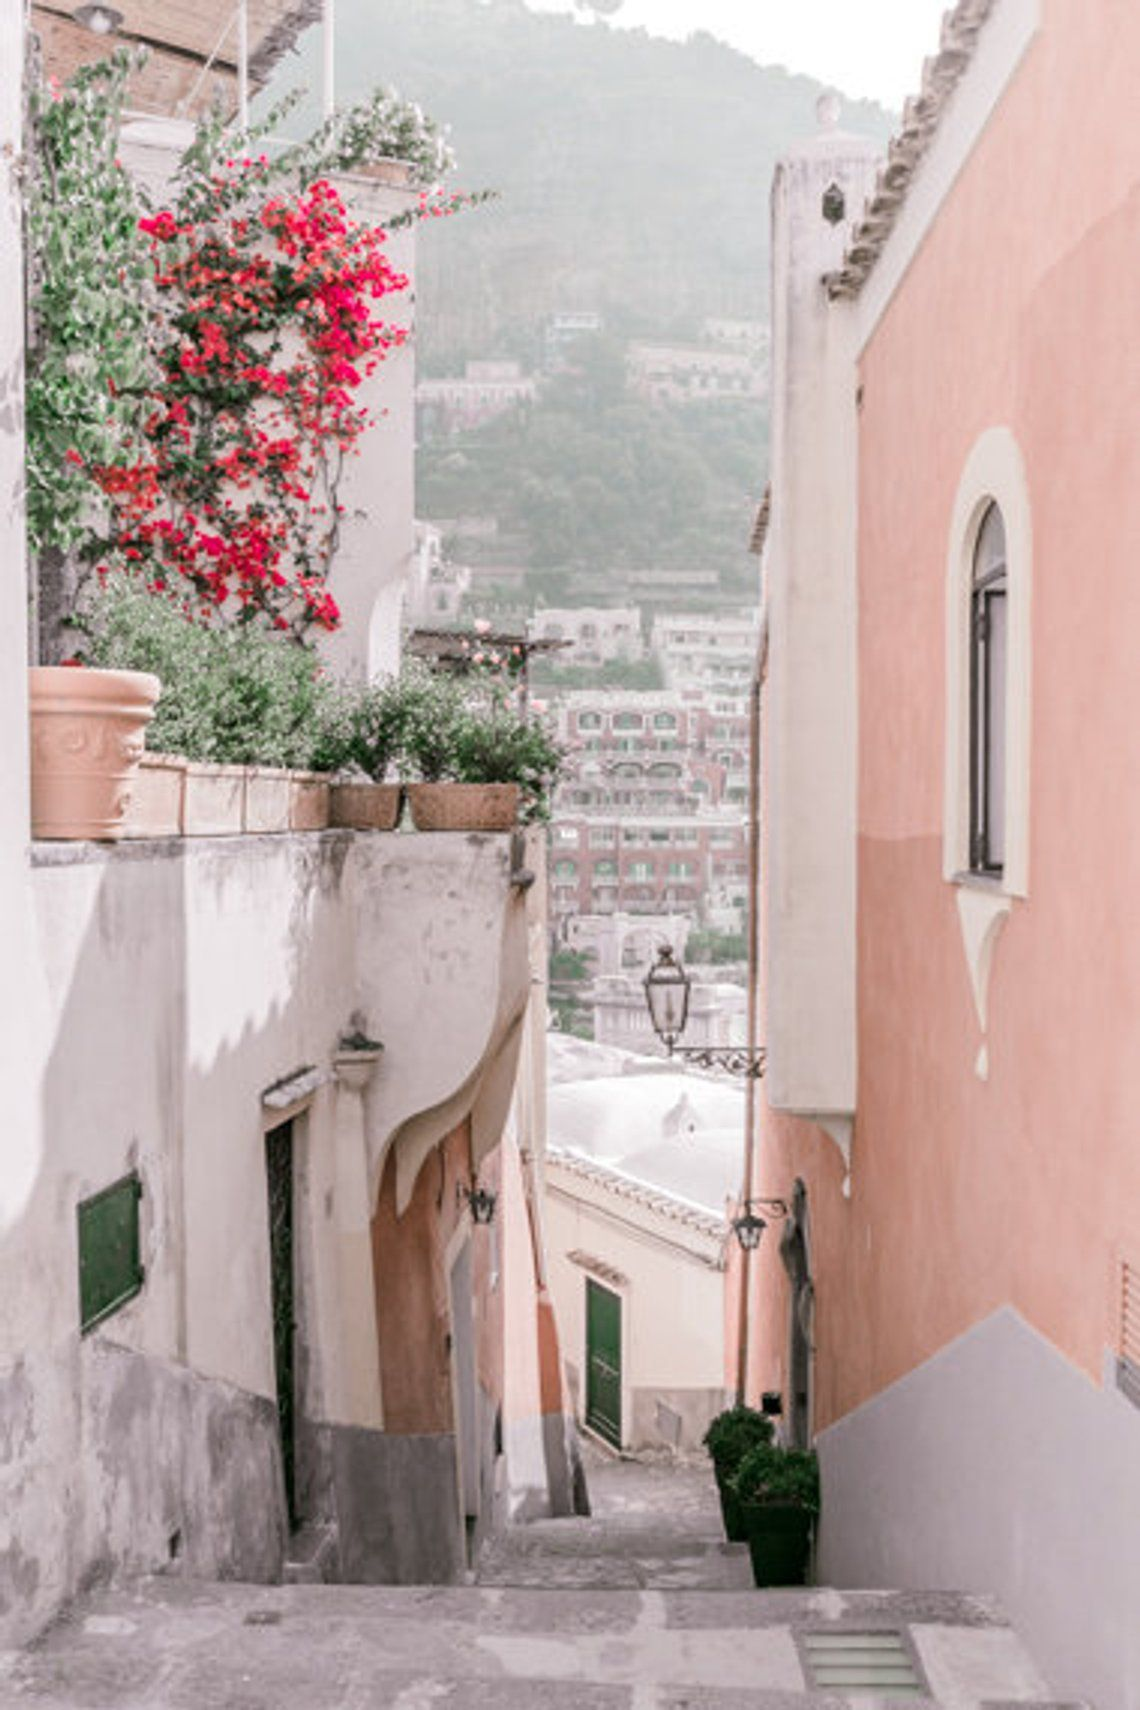 Italy Prints Wall Art Positano Wall Art Prints Etsy Picture Collage Wall Photo Wall Collage Art Collage Wall